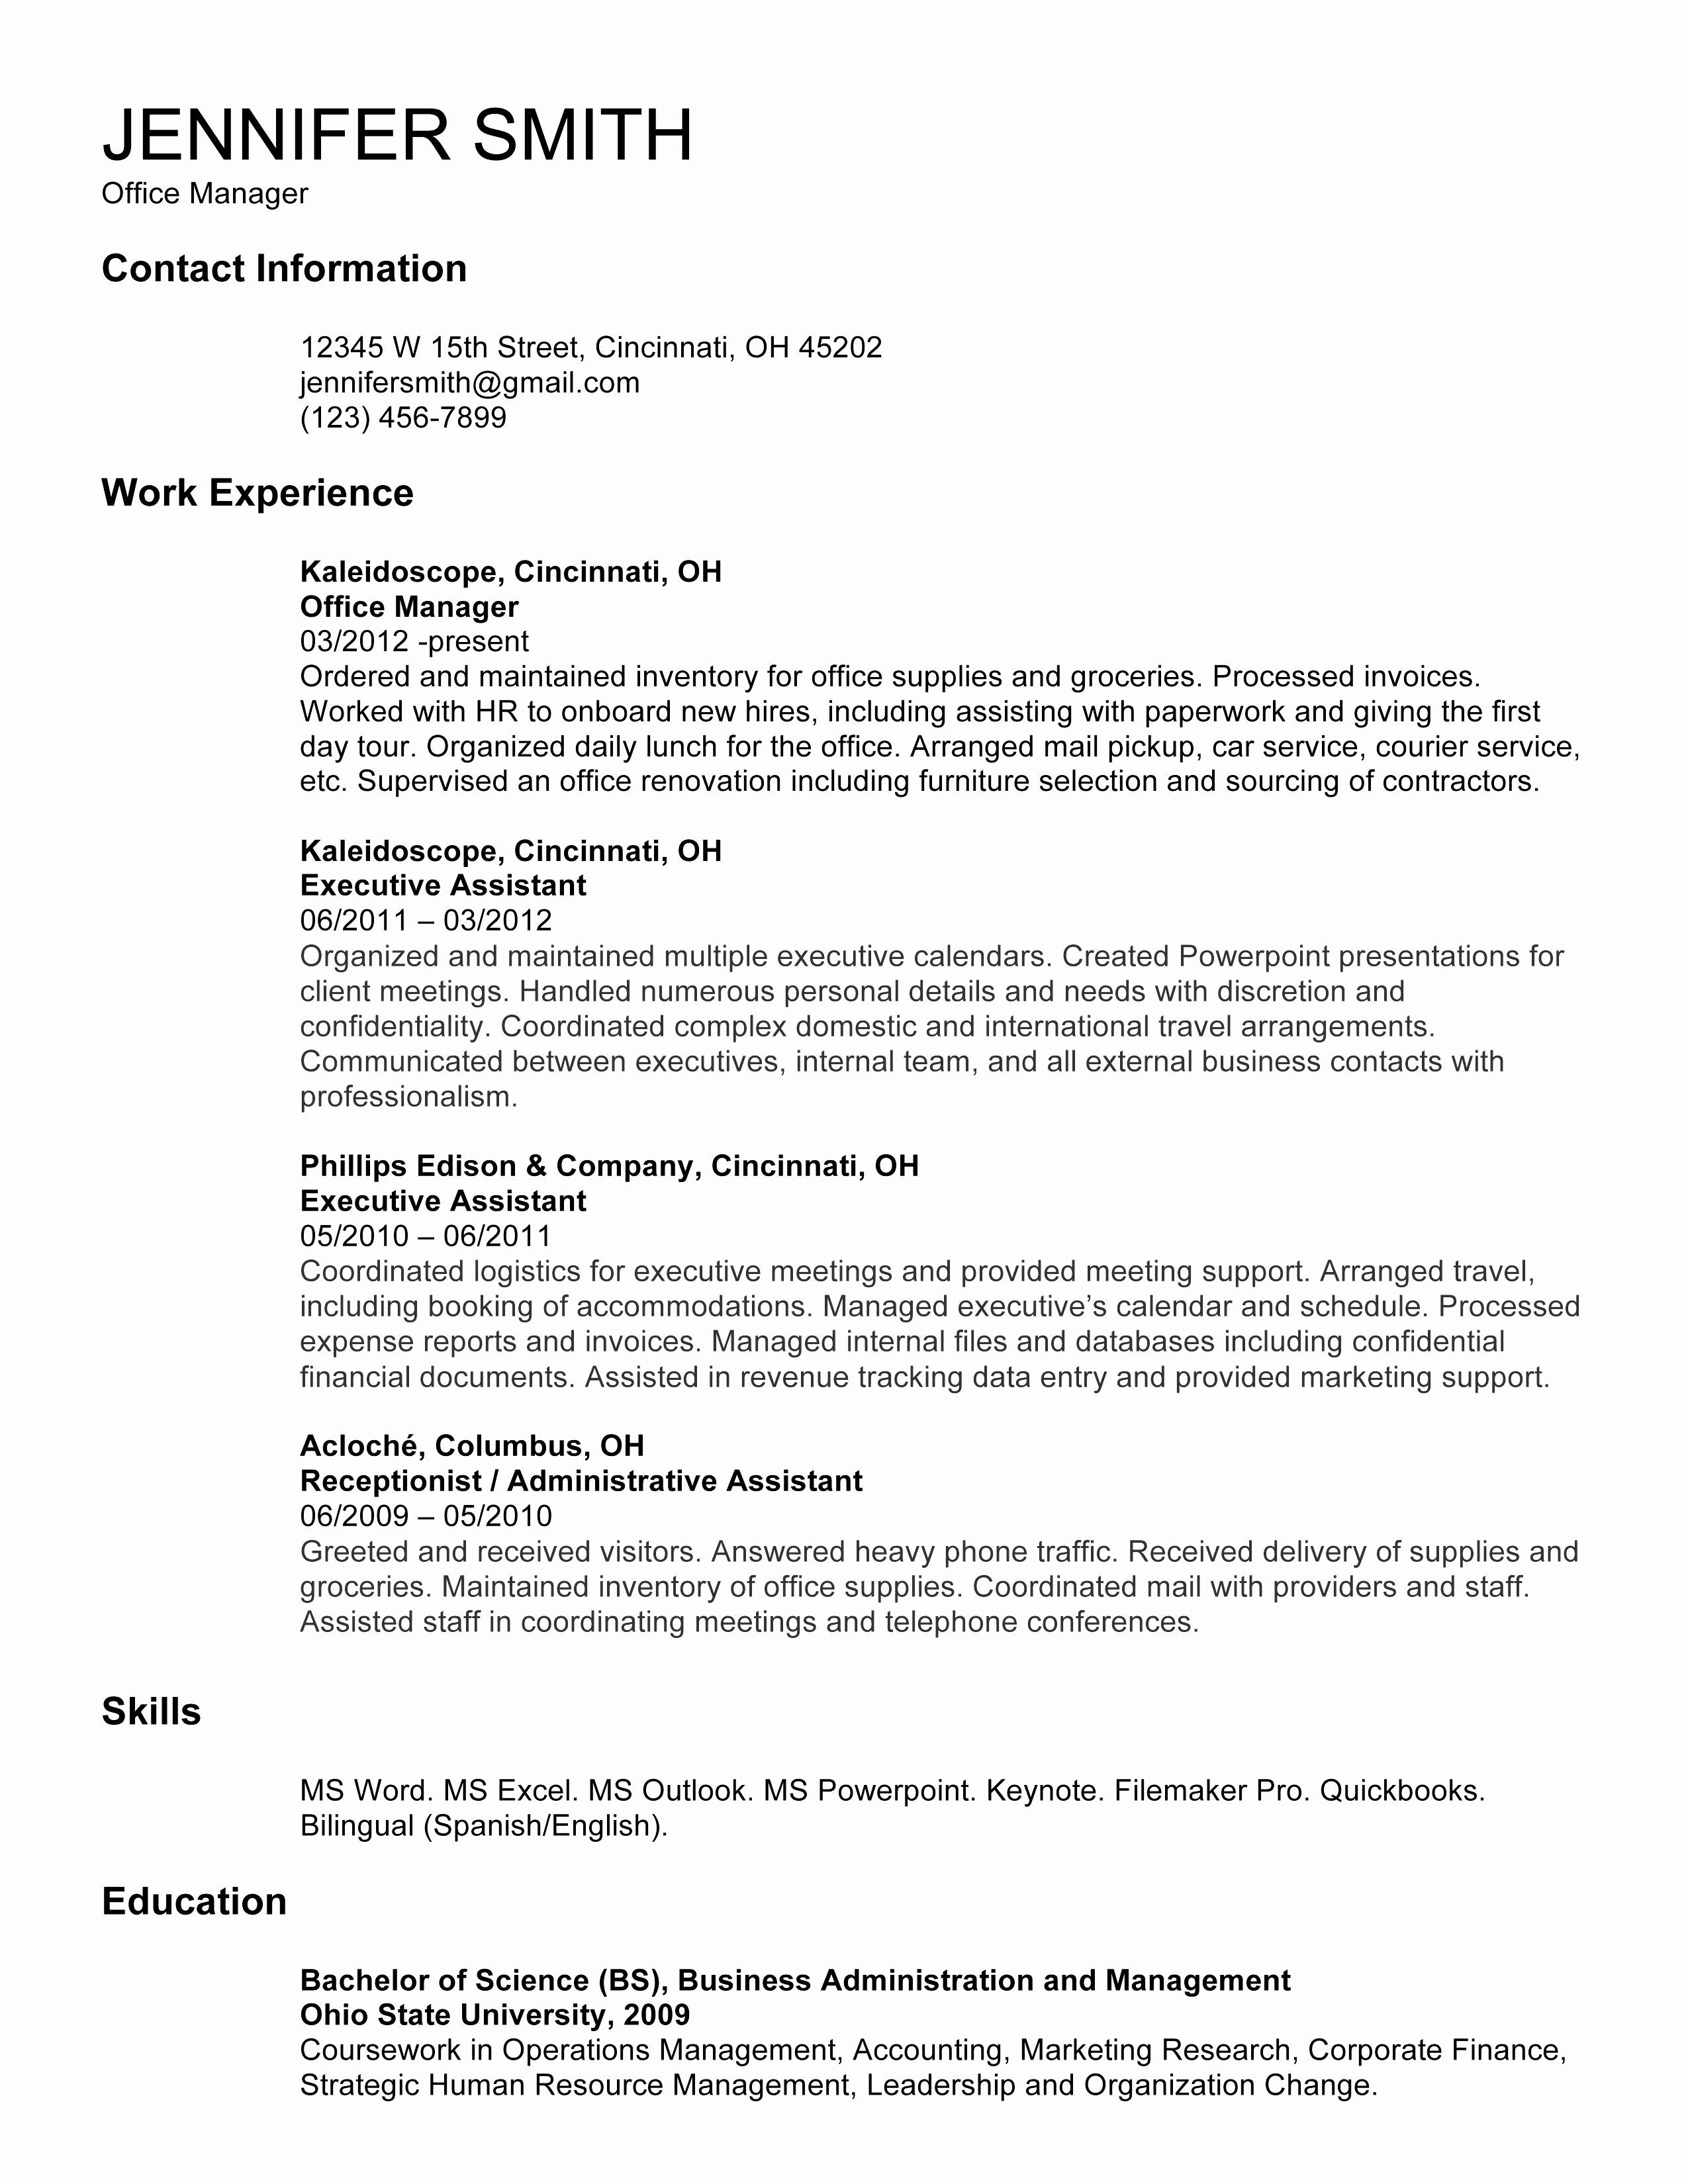 Cover Letter Template for Receptionist - Managerial Cover Letter Beautiful Reception Resume Luxury American